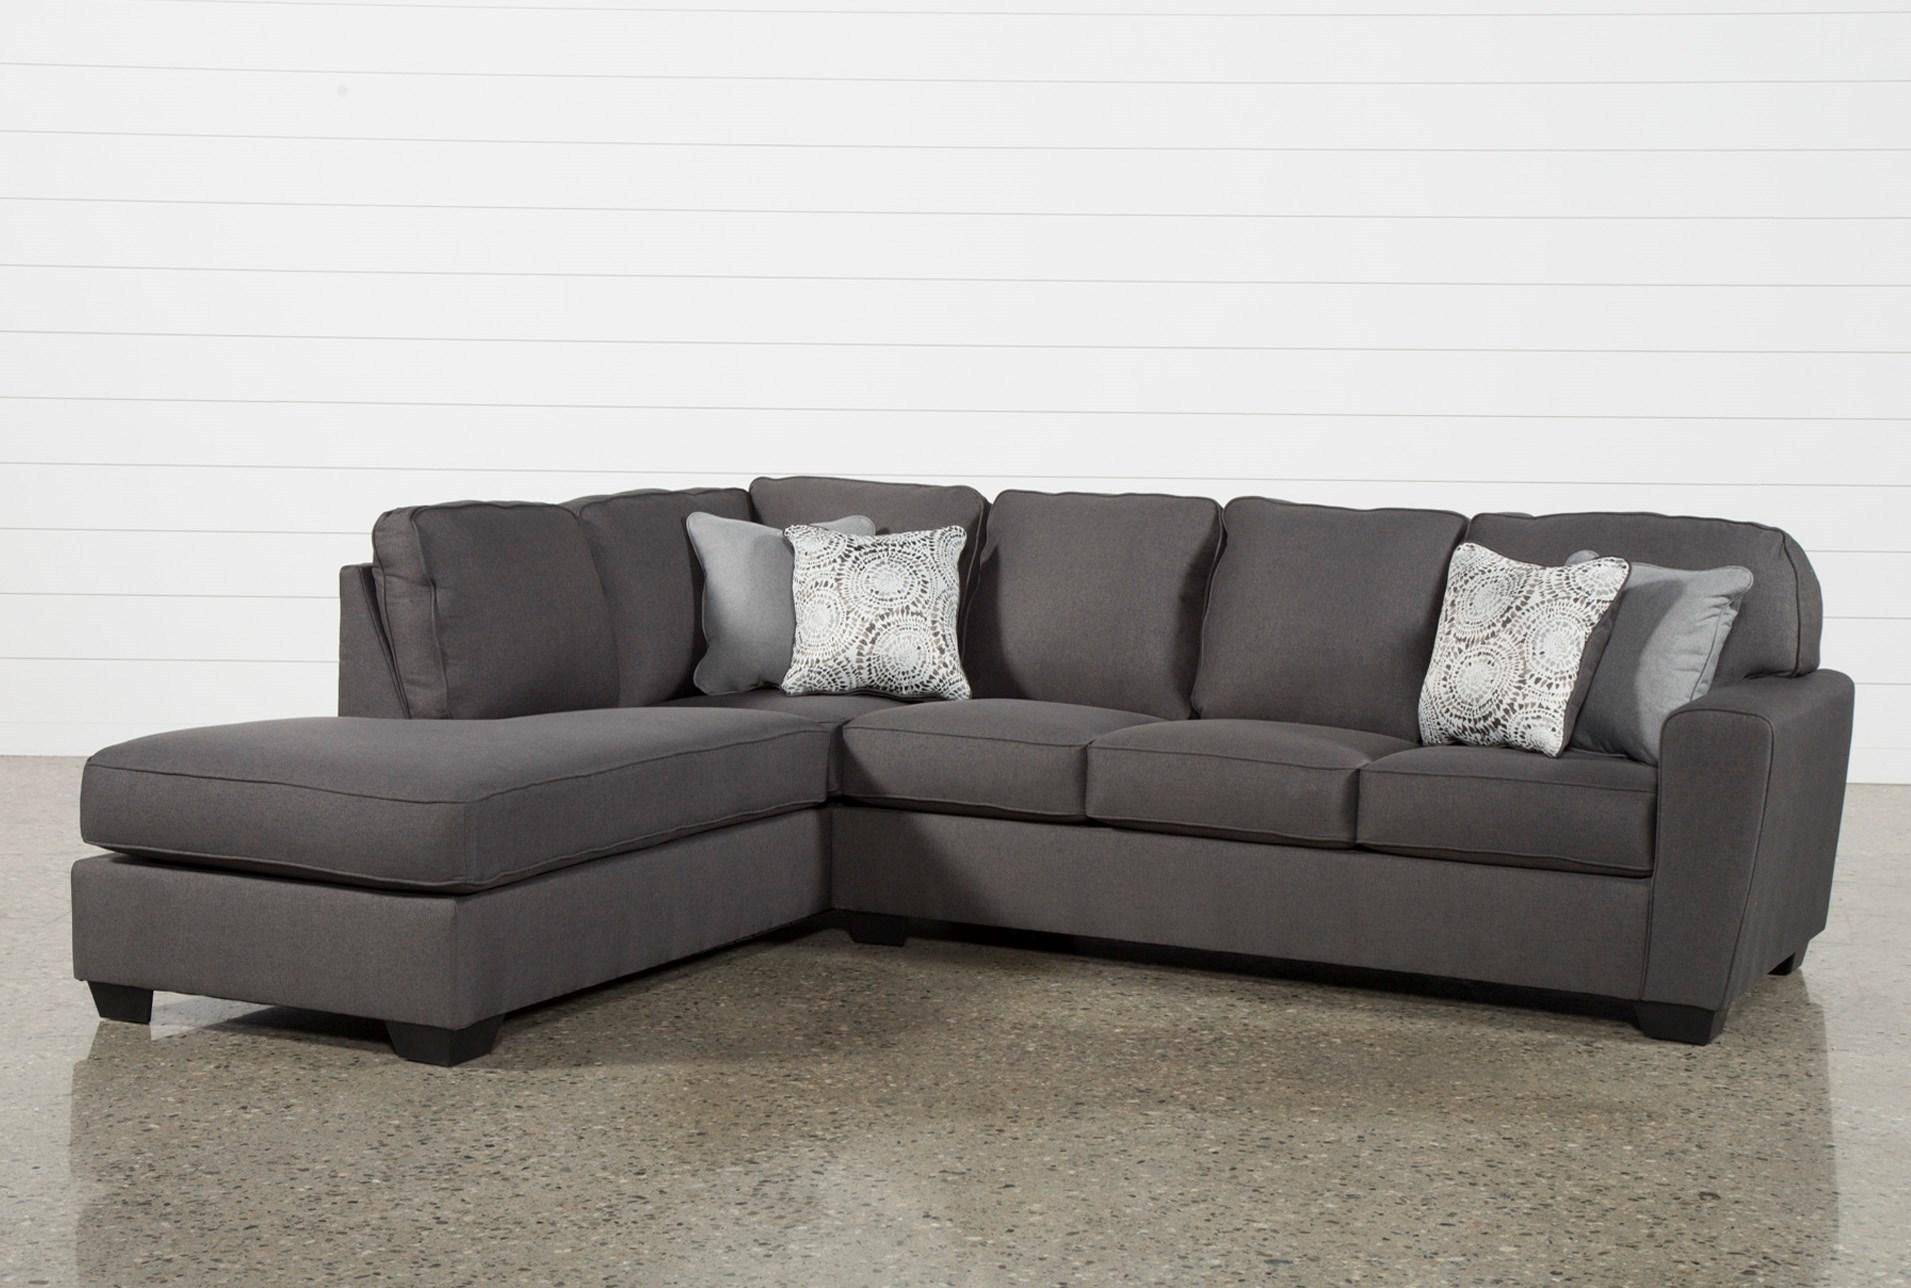 Mcdade Graphite 2 Piece Sectional W/laf Chaise | Graphite, Living With Regard To Josephine 2 Piece Sectionals With Laf Sofa (Image 20 of 25)